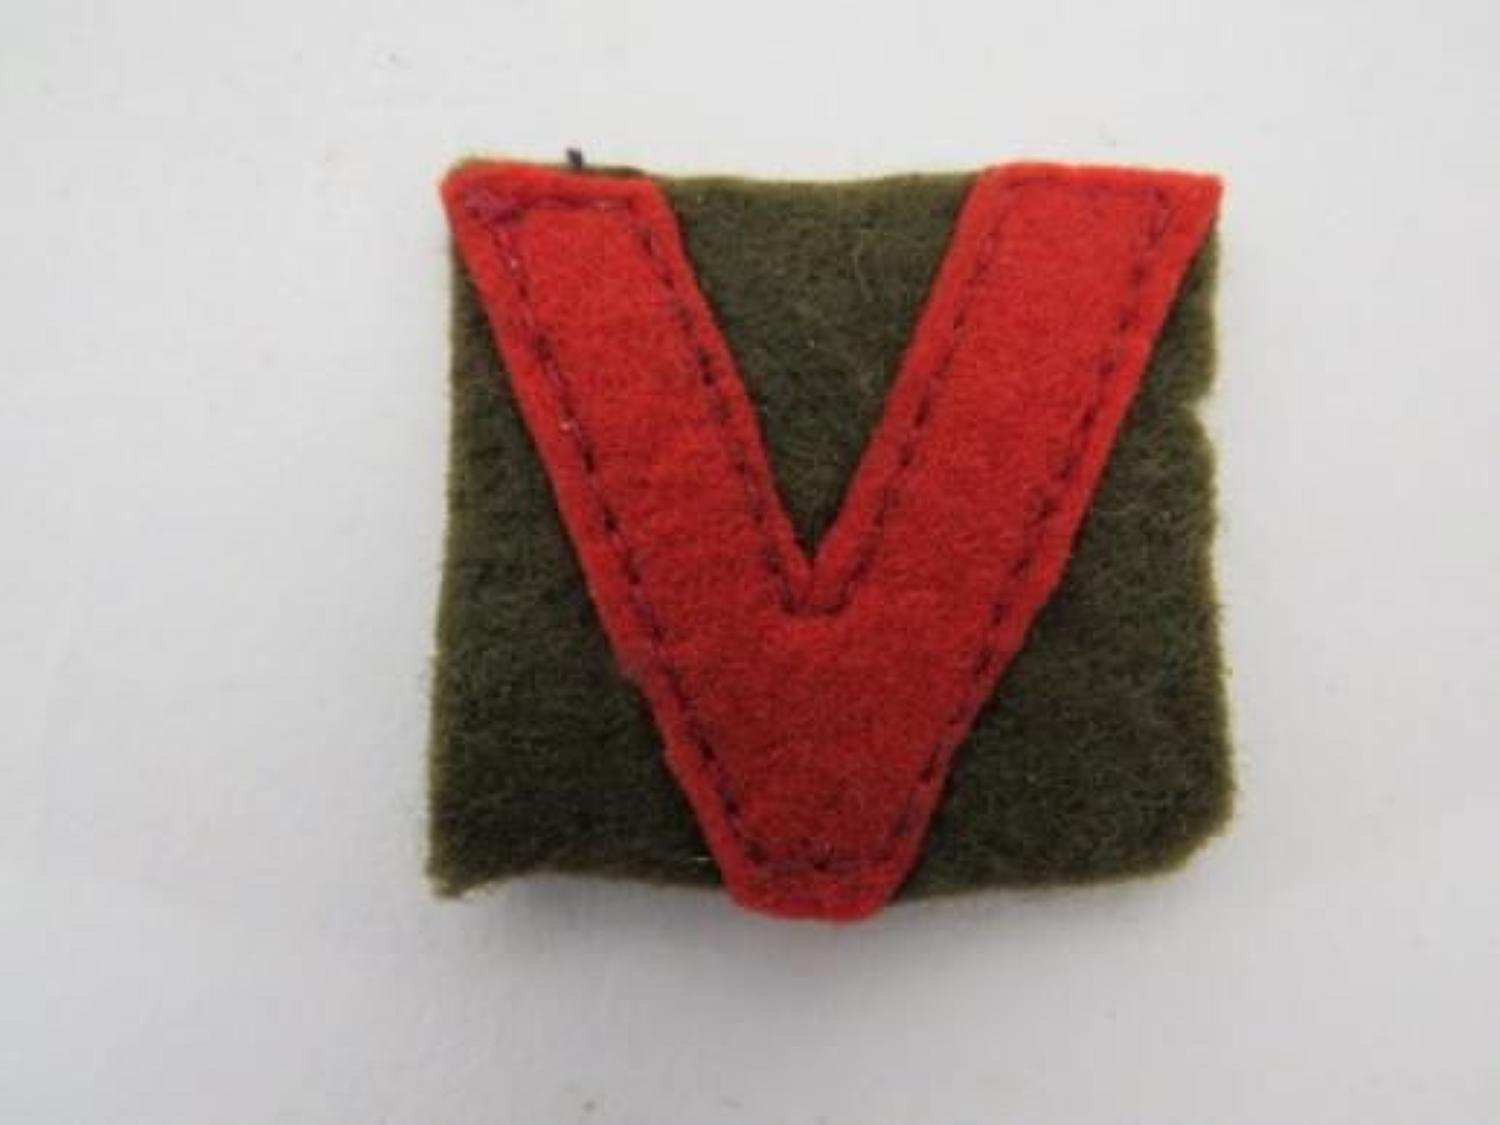 Northumberland Fusiliers Formation Badge